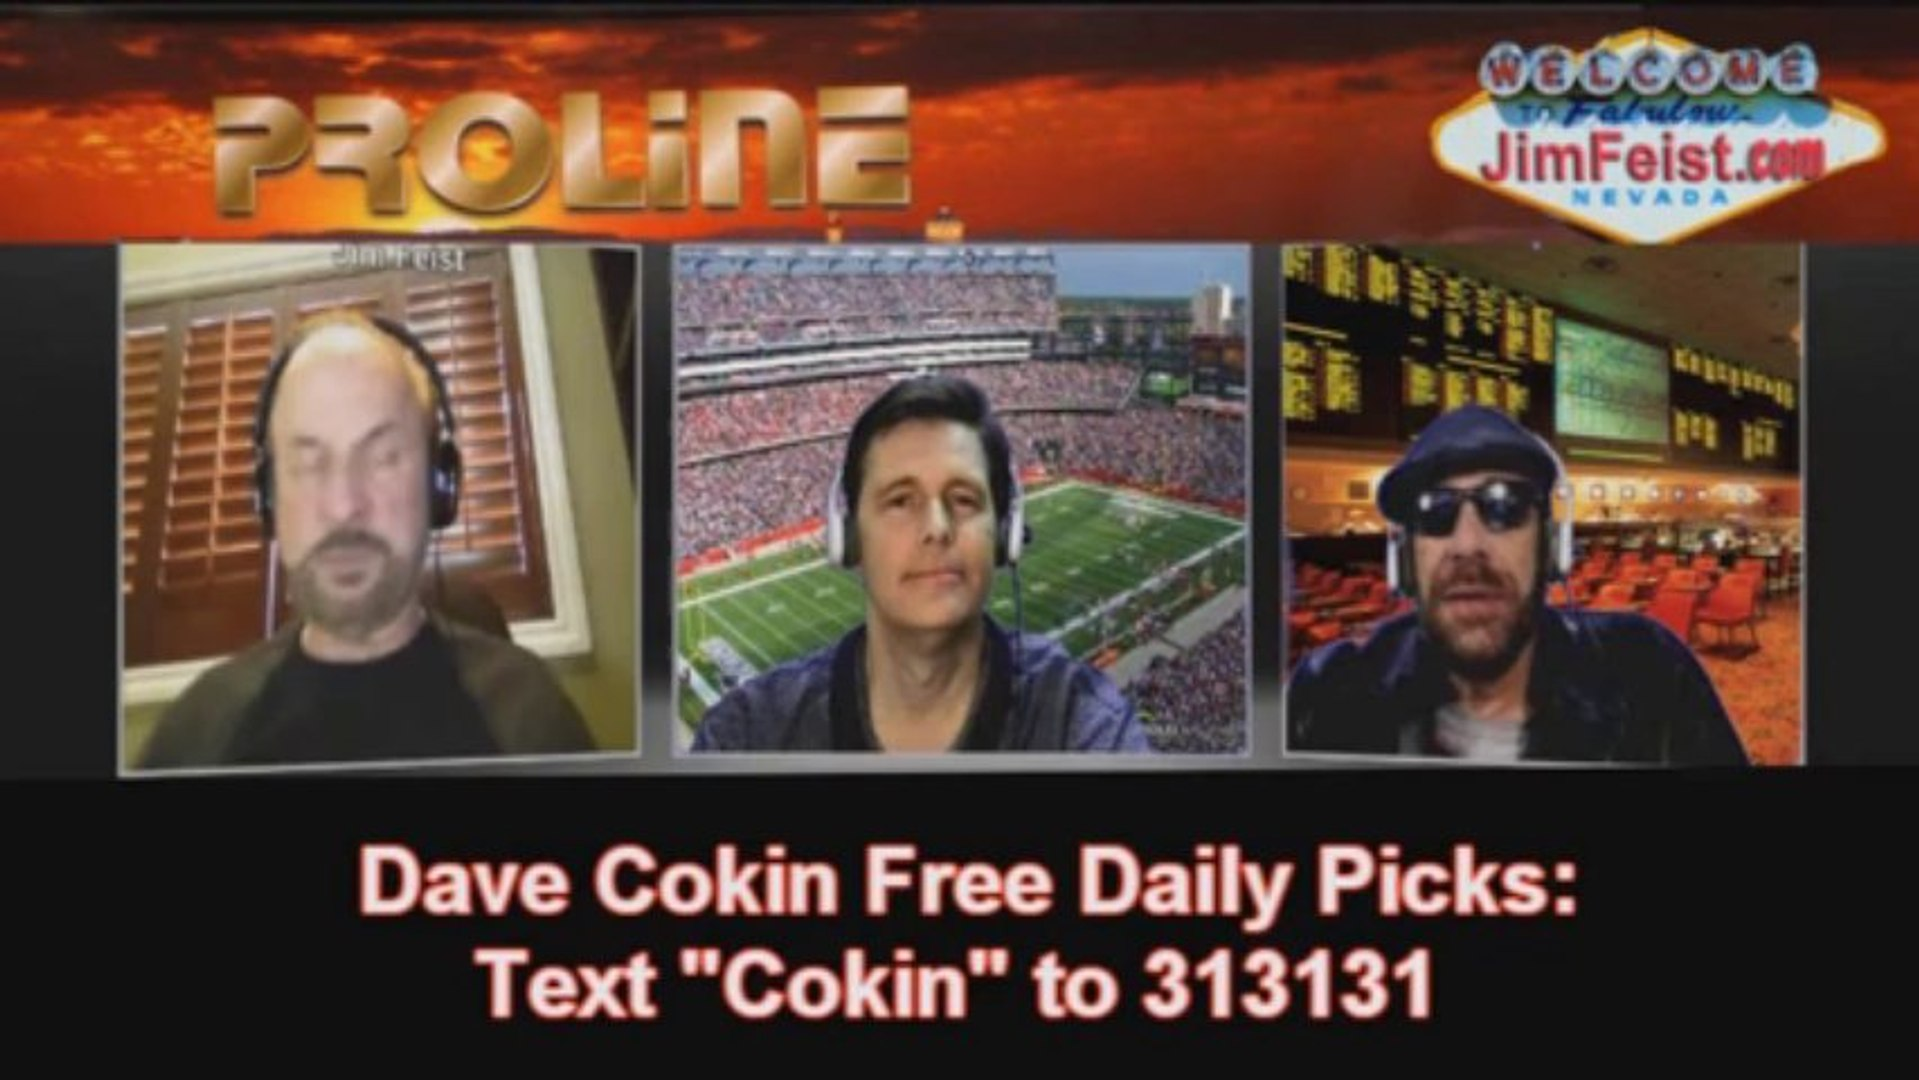 Proline NFL Week 15, Coaching Changes, Patriots vs. Dolphins, Jets vs. Panthers, December 15, 2013